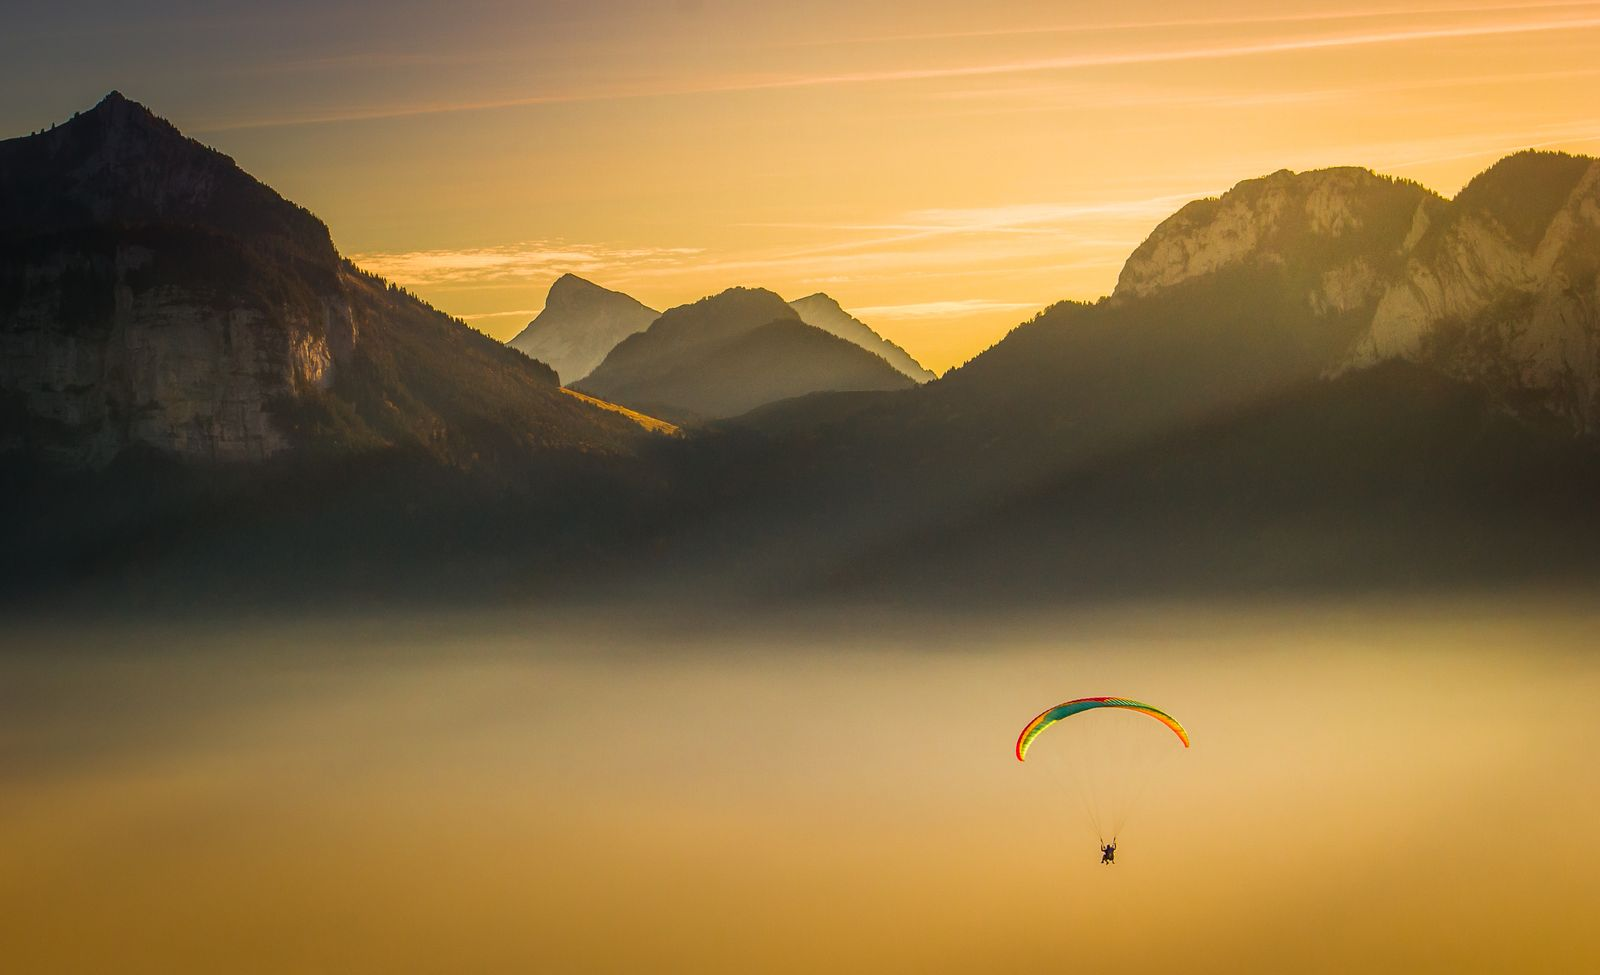 Gliding above the gold